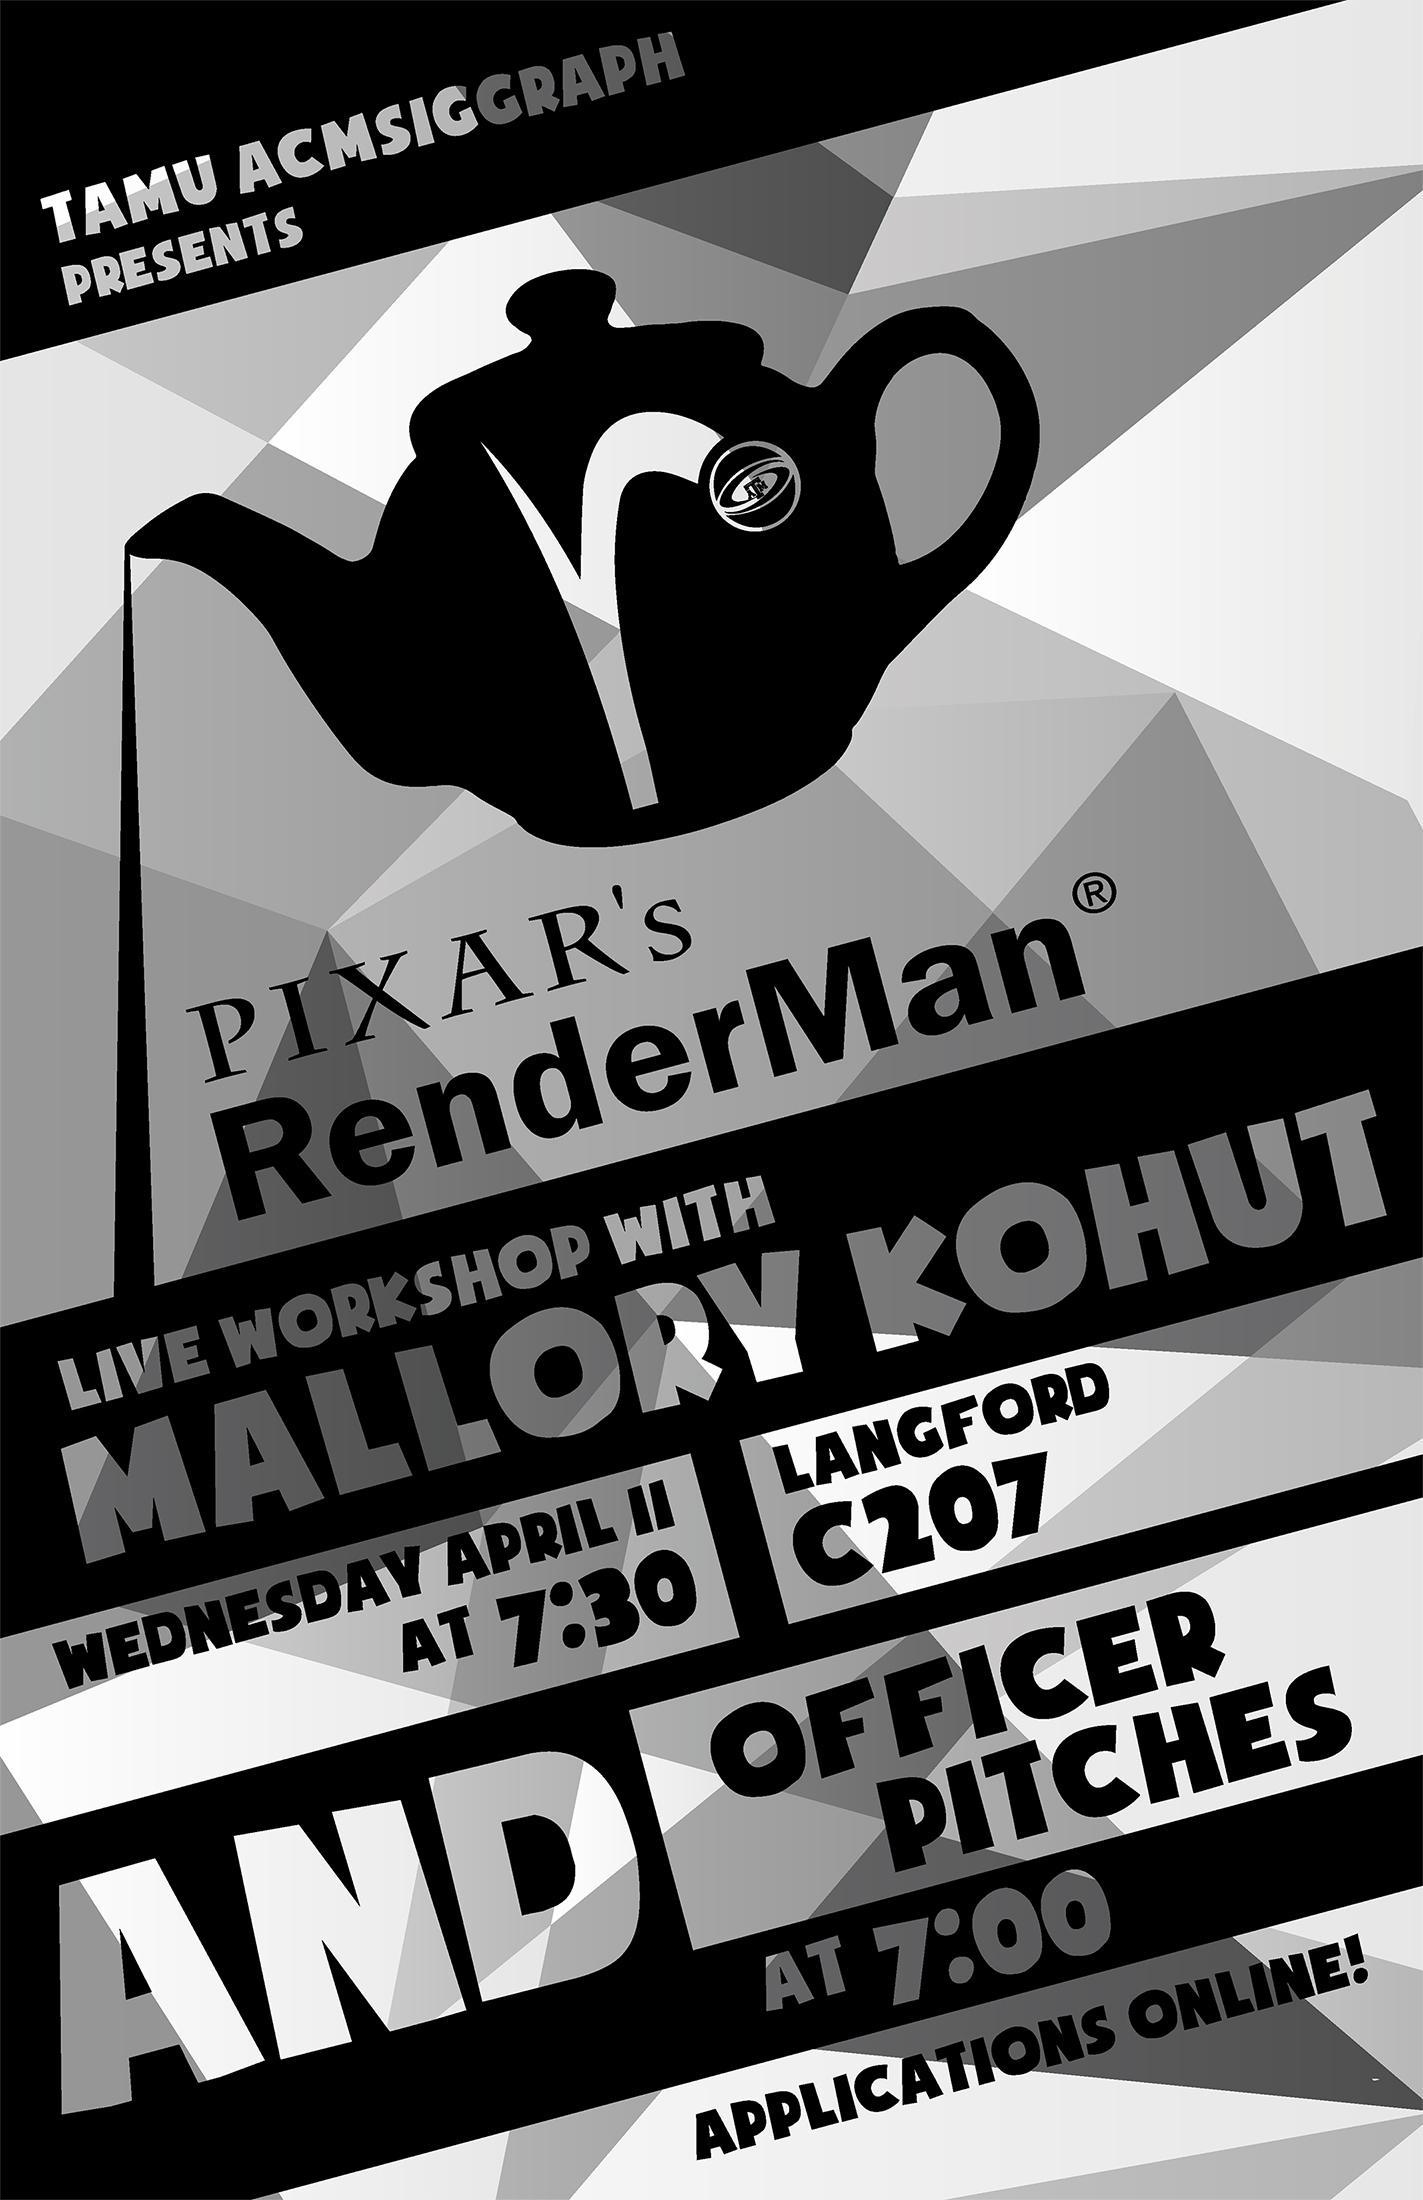 Renderman Talk